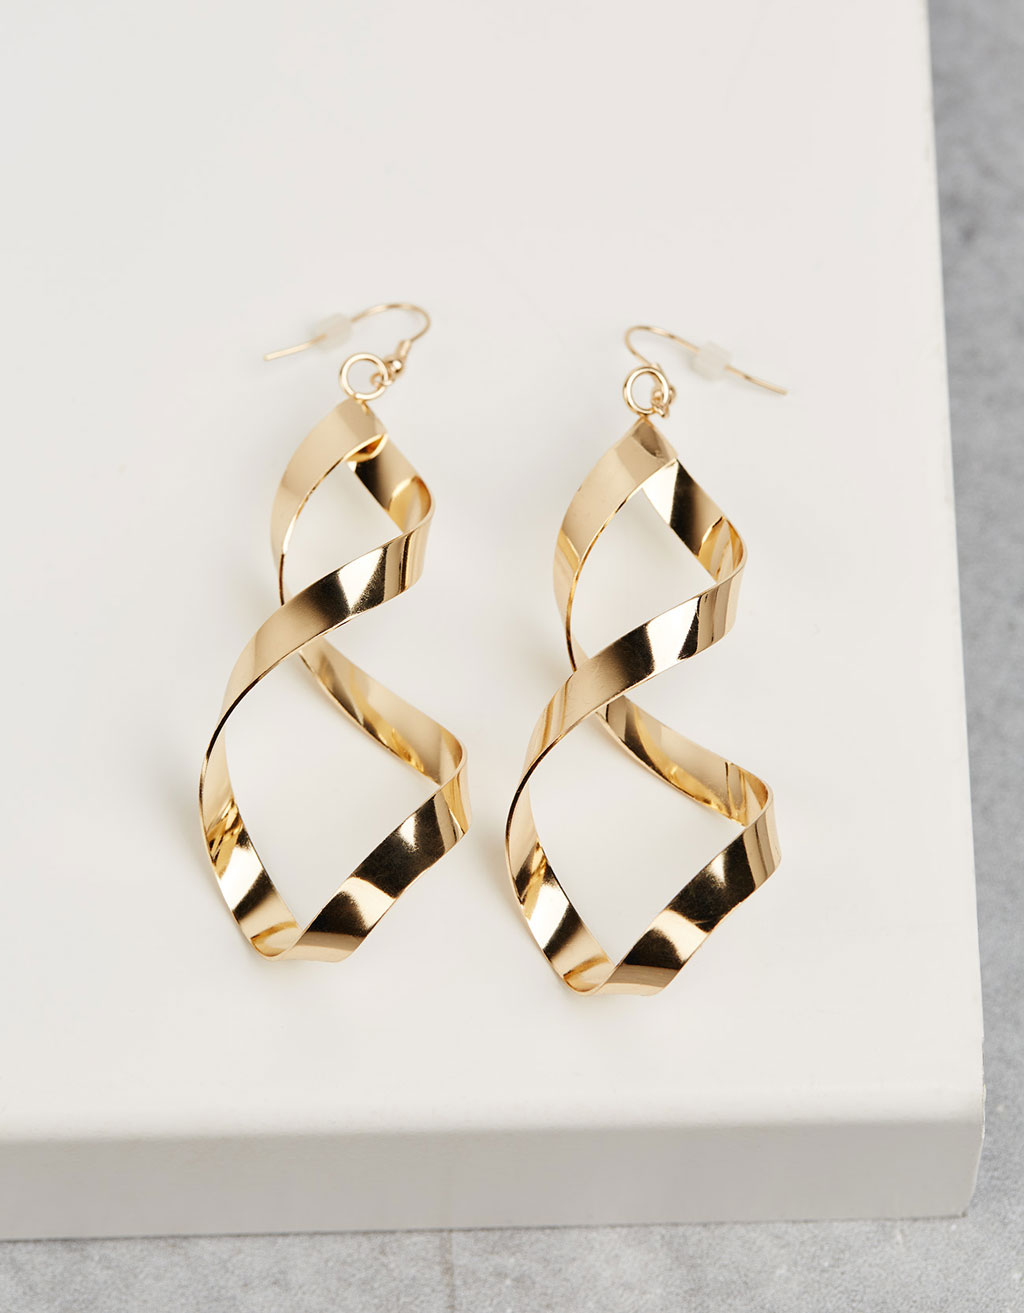 Large twisted earrings